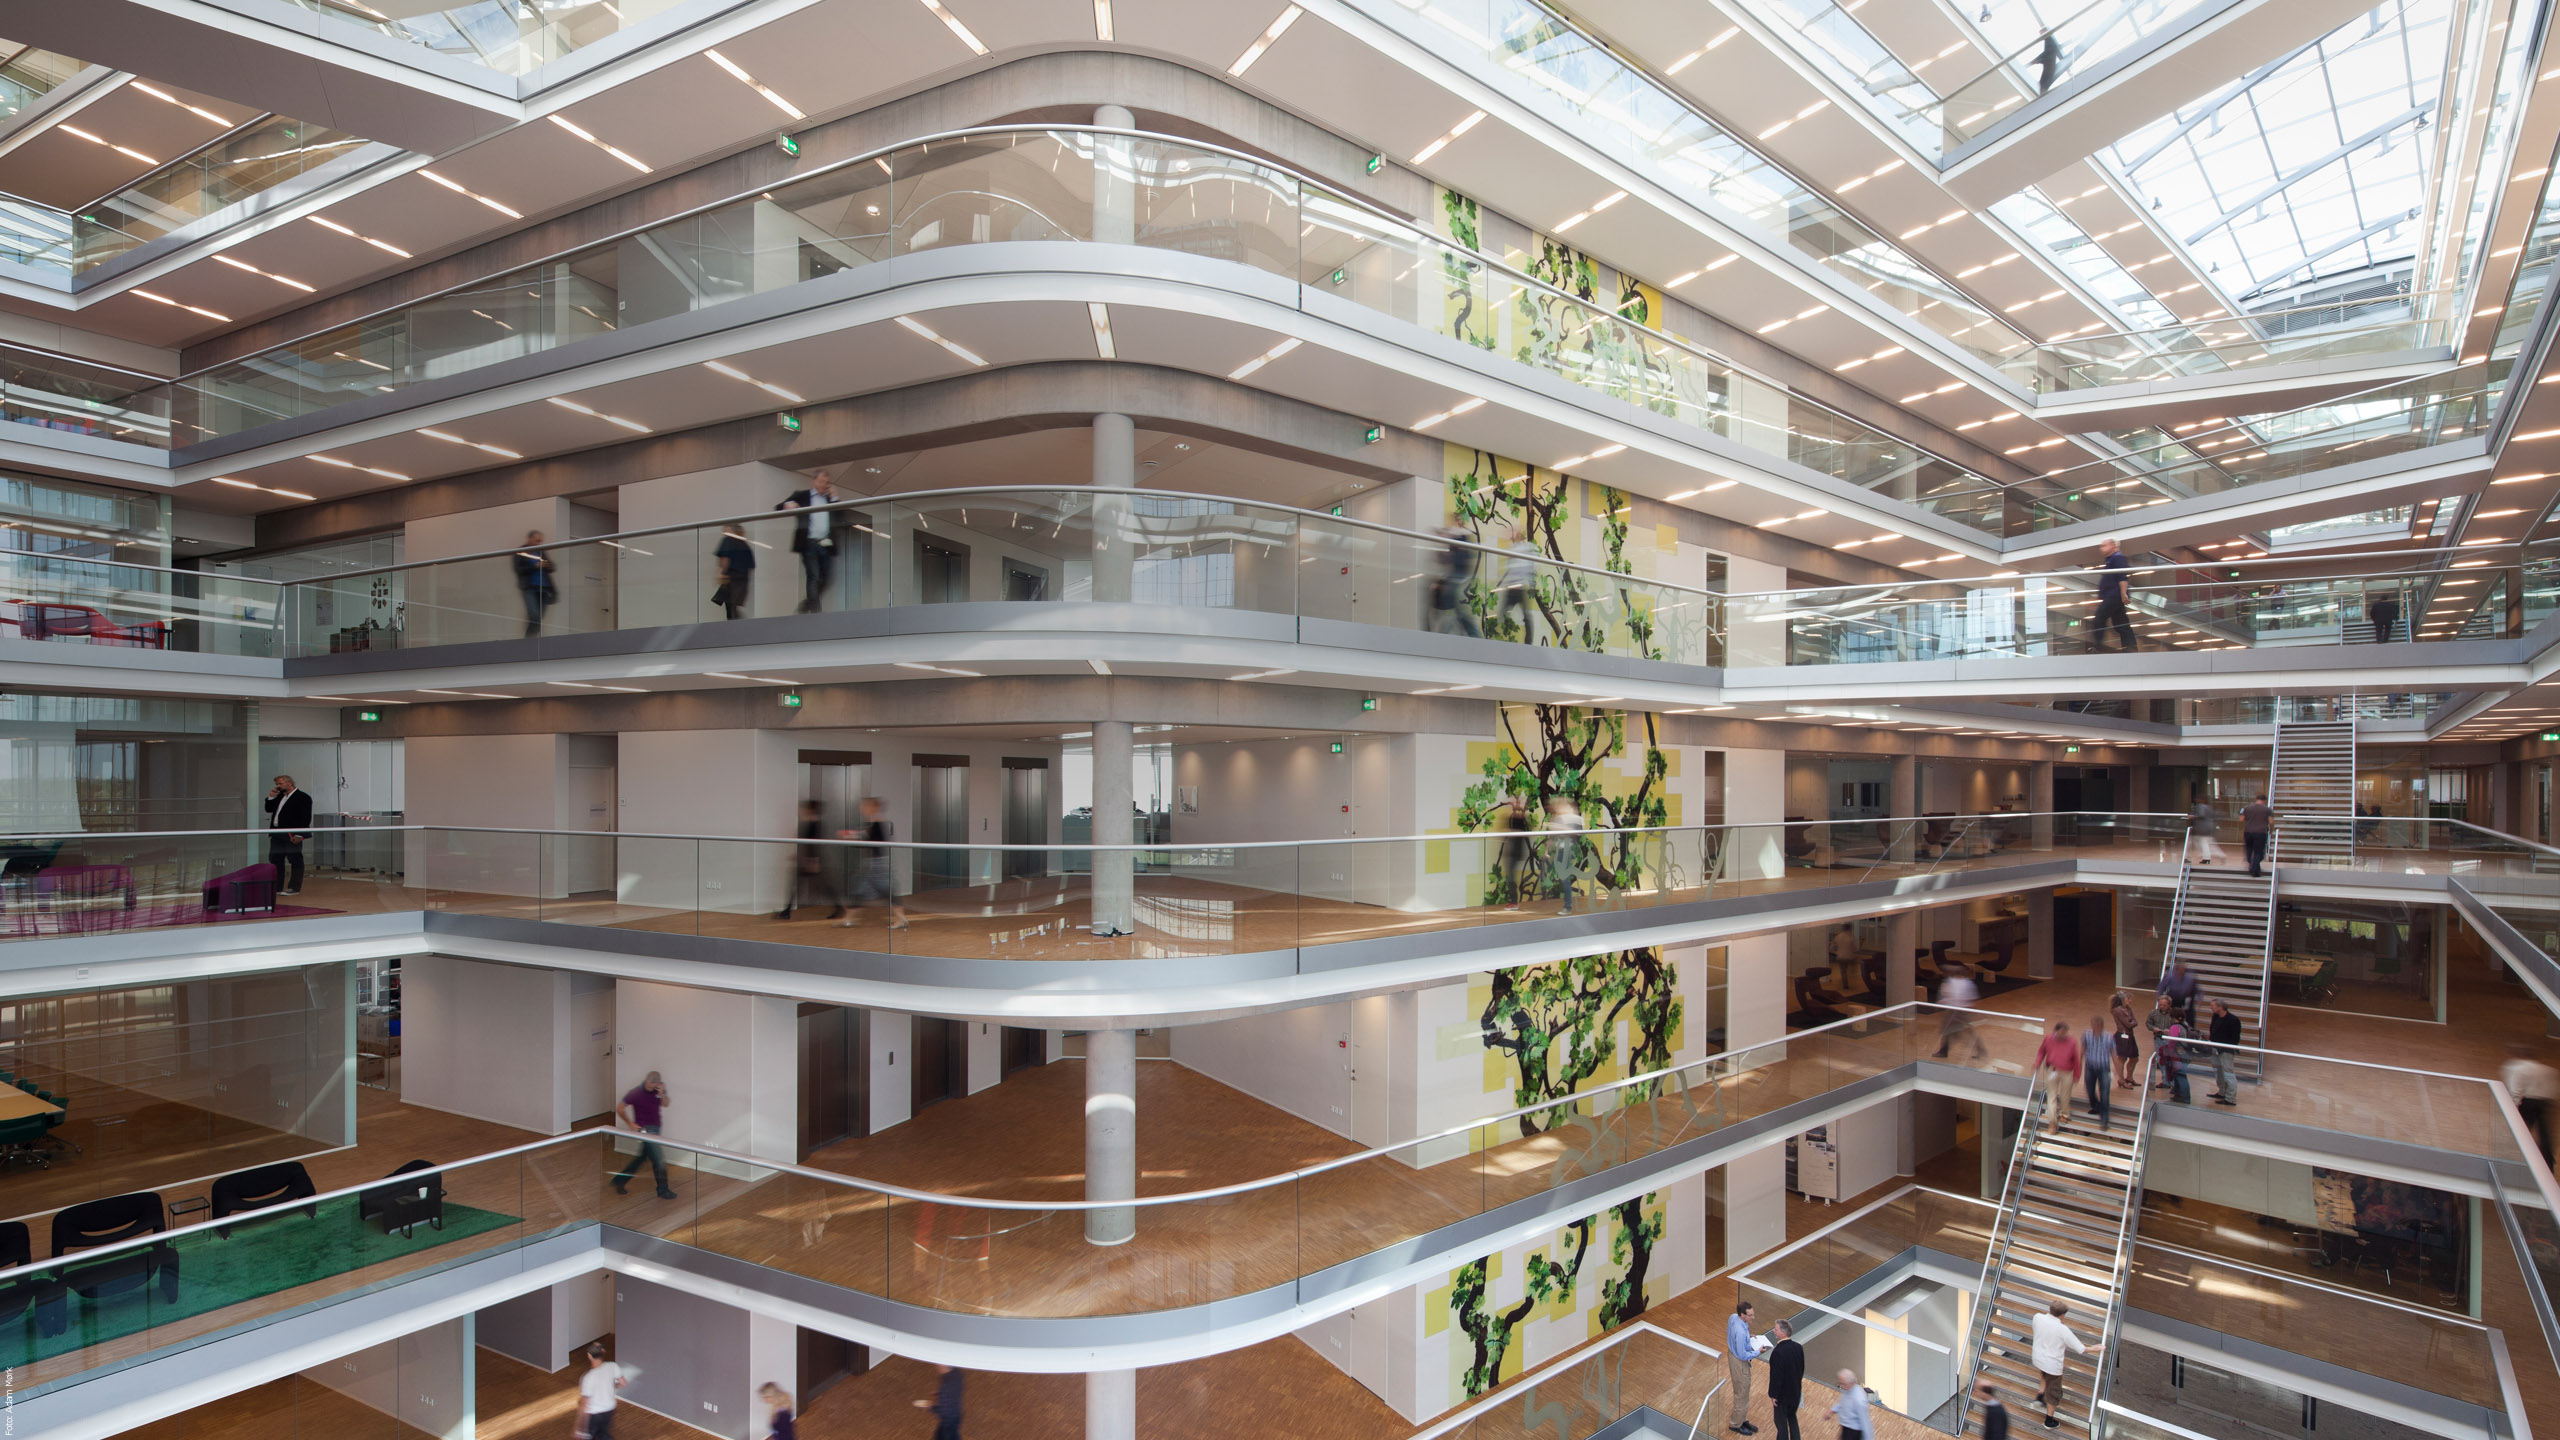 Acoustics is an important feature of the new Ramboll Domicile in Ørestad